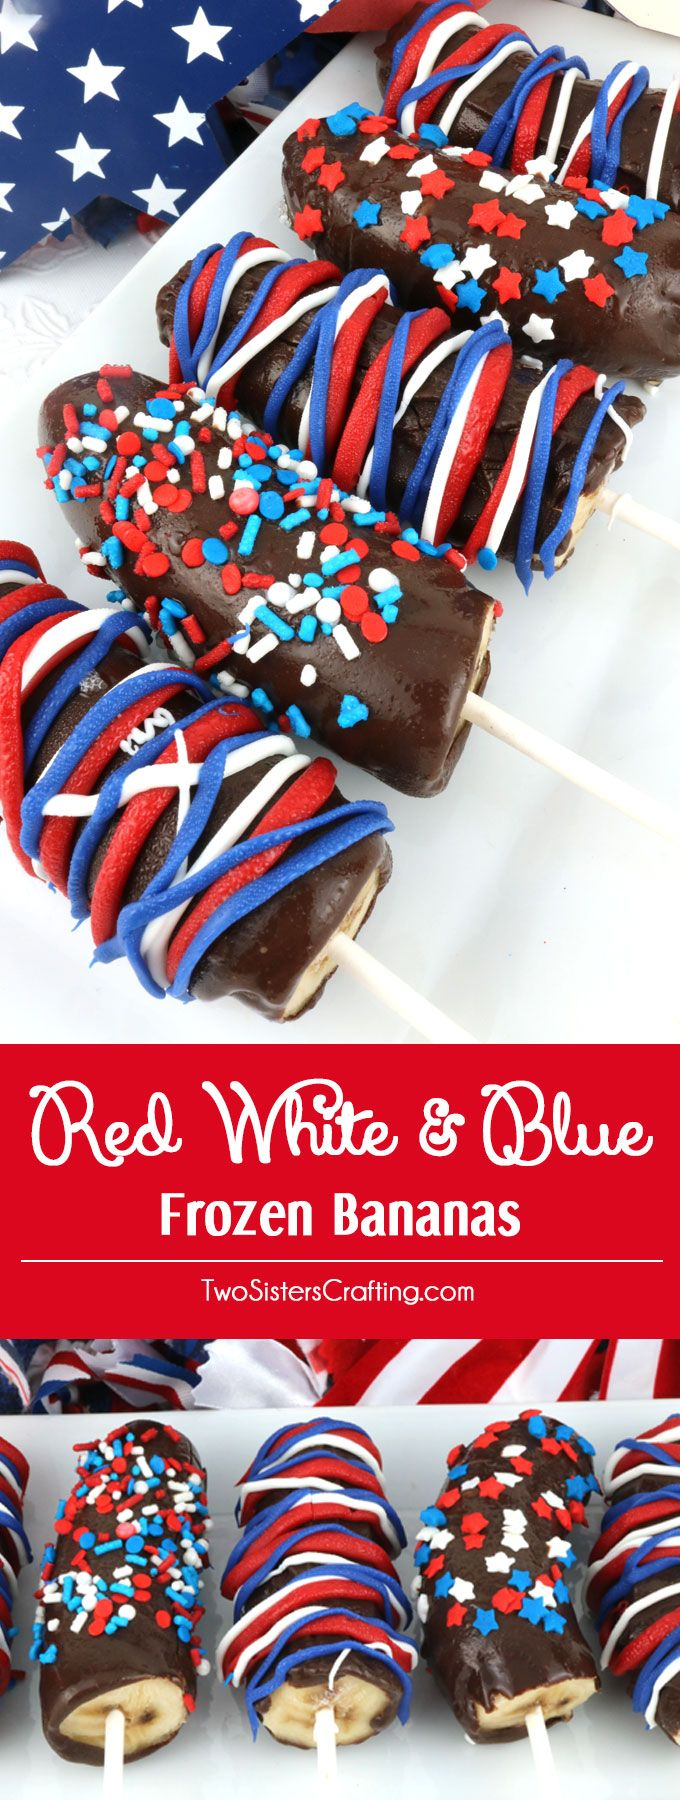 Red White and Blue Frozen Bananas - easy to make patriotic homemade chocolate covered frozen bananas for a 4th of July Party or a Memorial Day Barbecue. Call them Frozen Bananas or call them Monkey Tails but this delicious frozen summer treat will be a great 4th of July dessert. Pin this yummy Fourth of July treat for later and follow us for more 4th of July Food ideas.